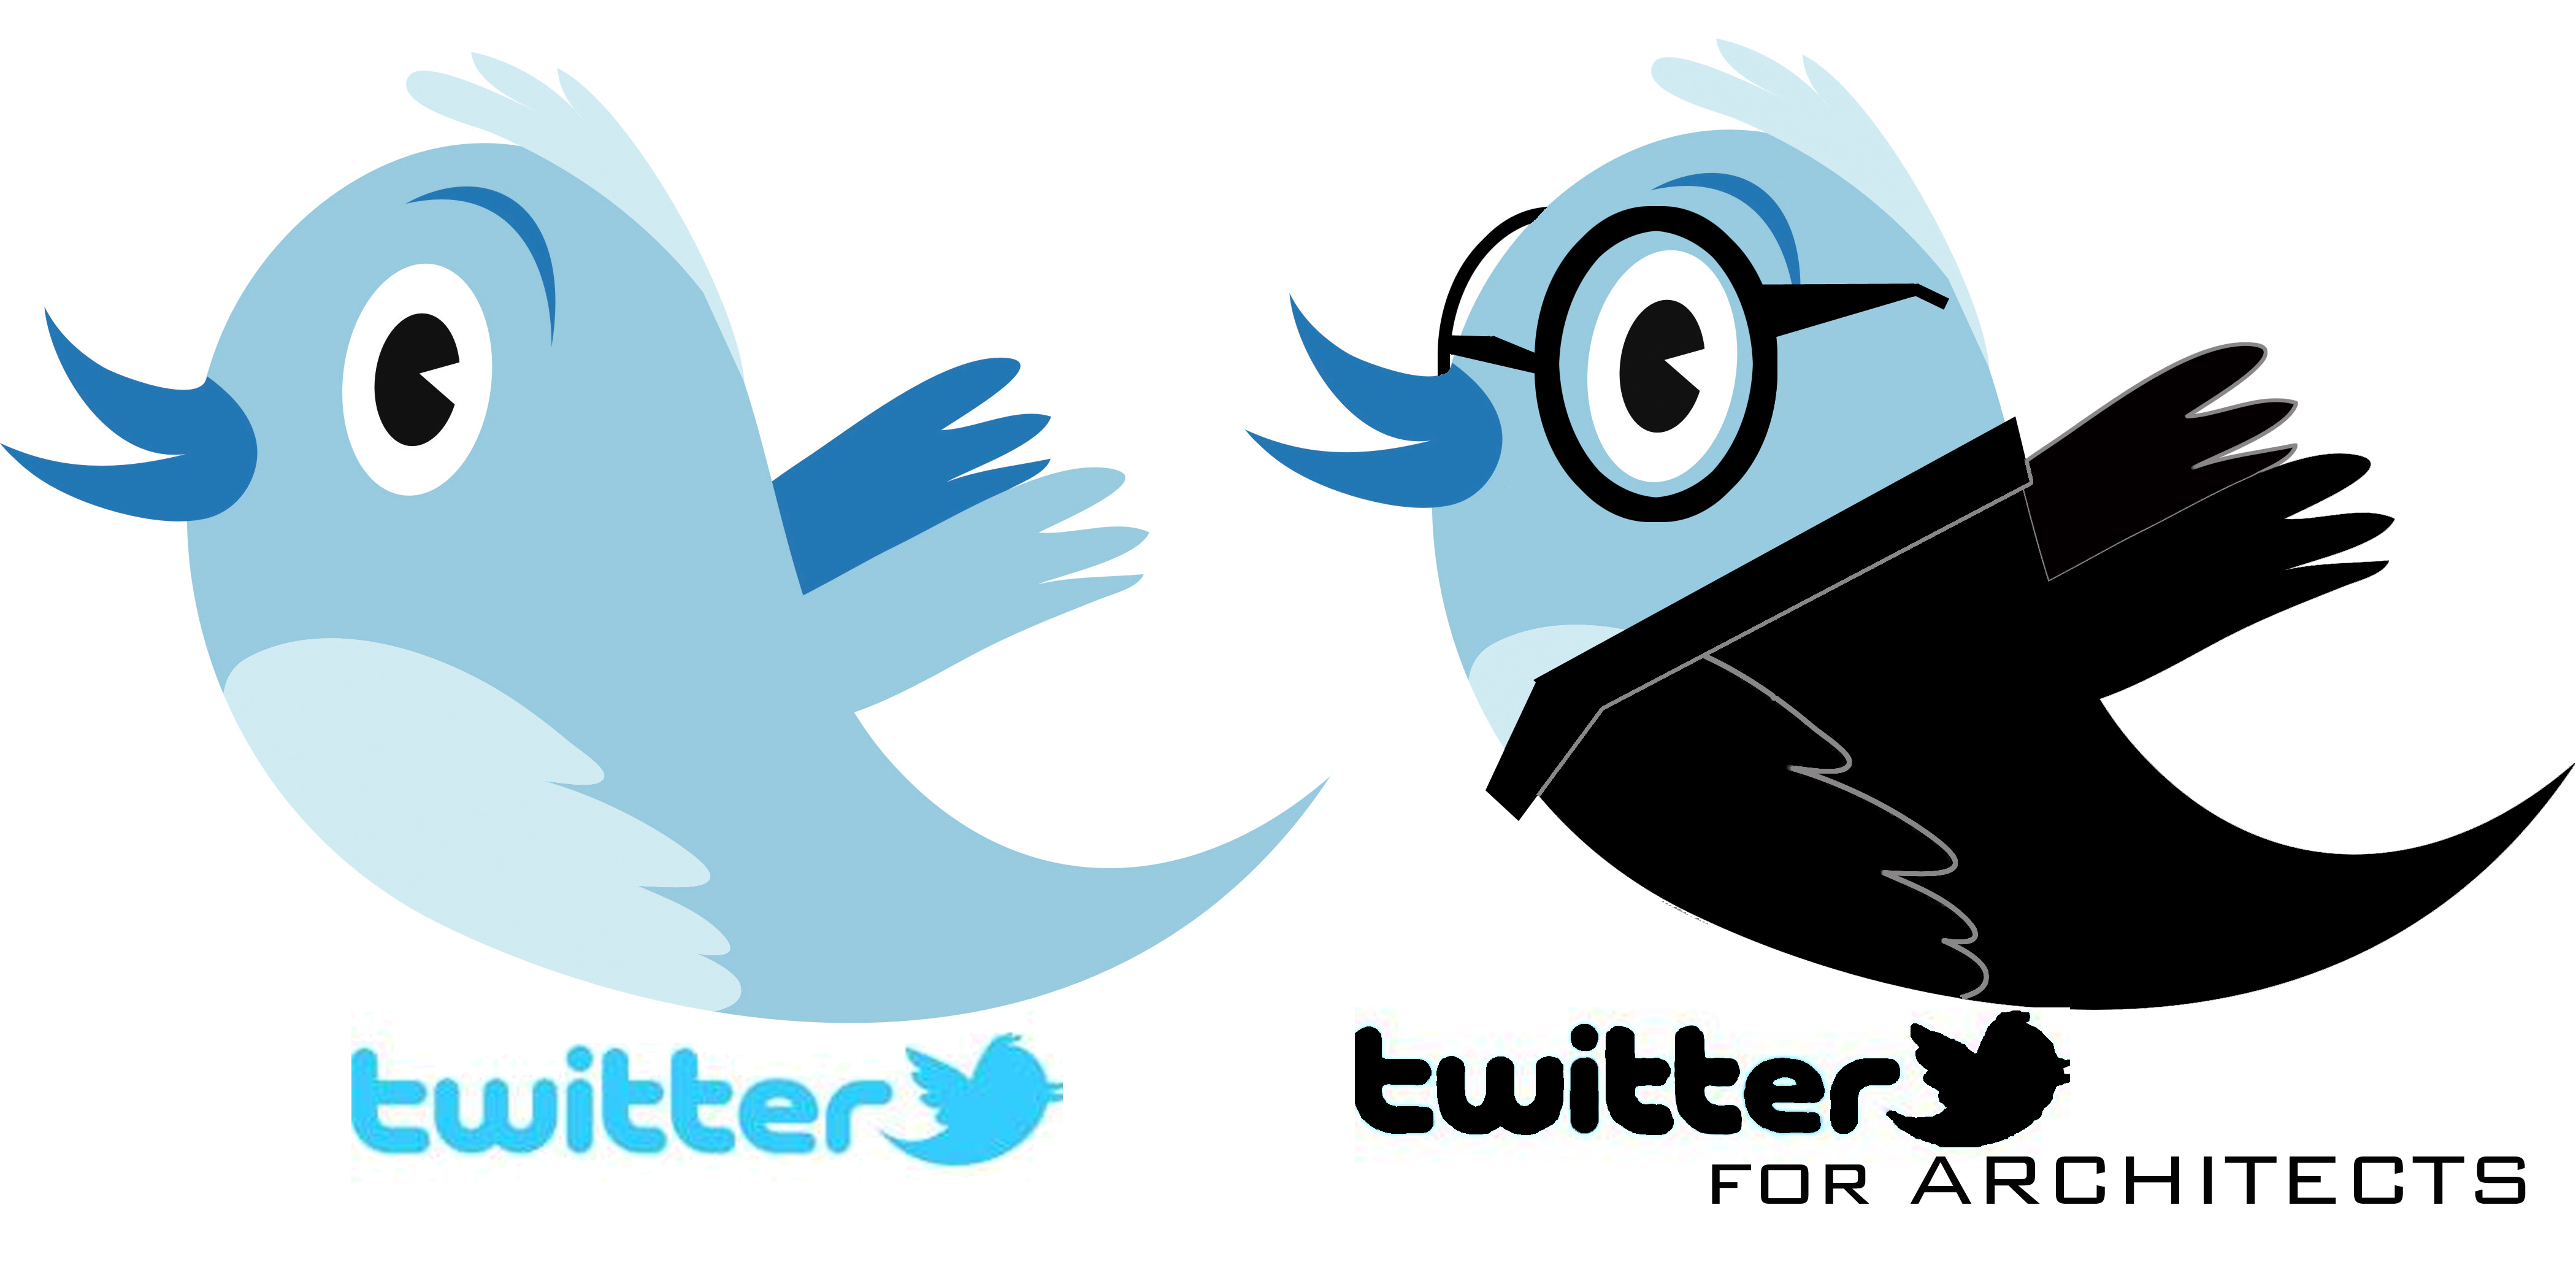 Twitter logo modified for Architects (click to enlarge)